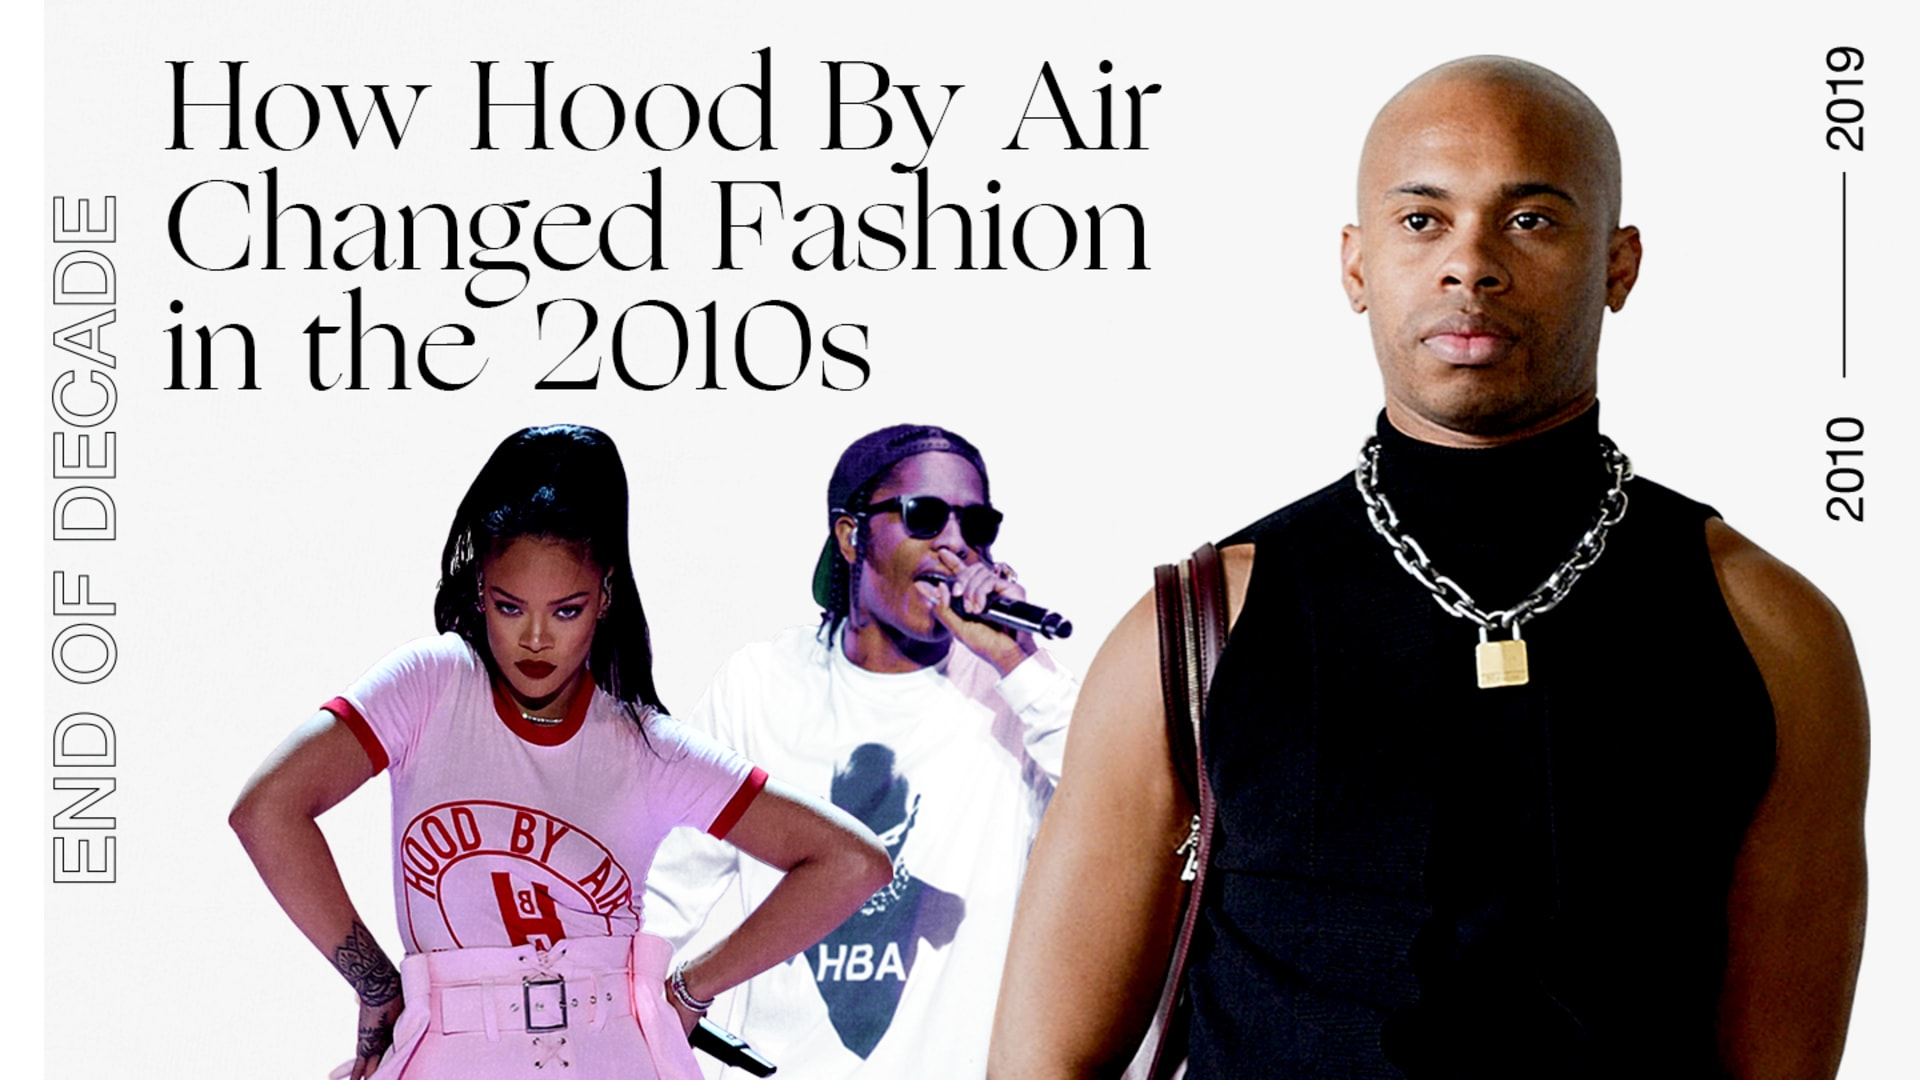 Hood By Air End of Decade